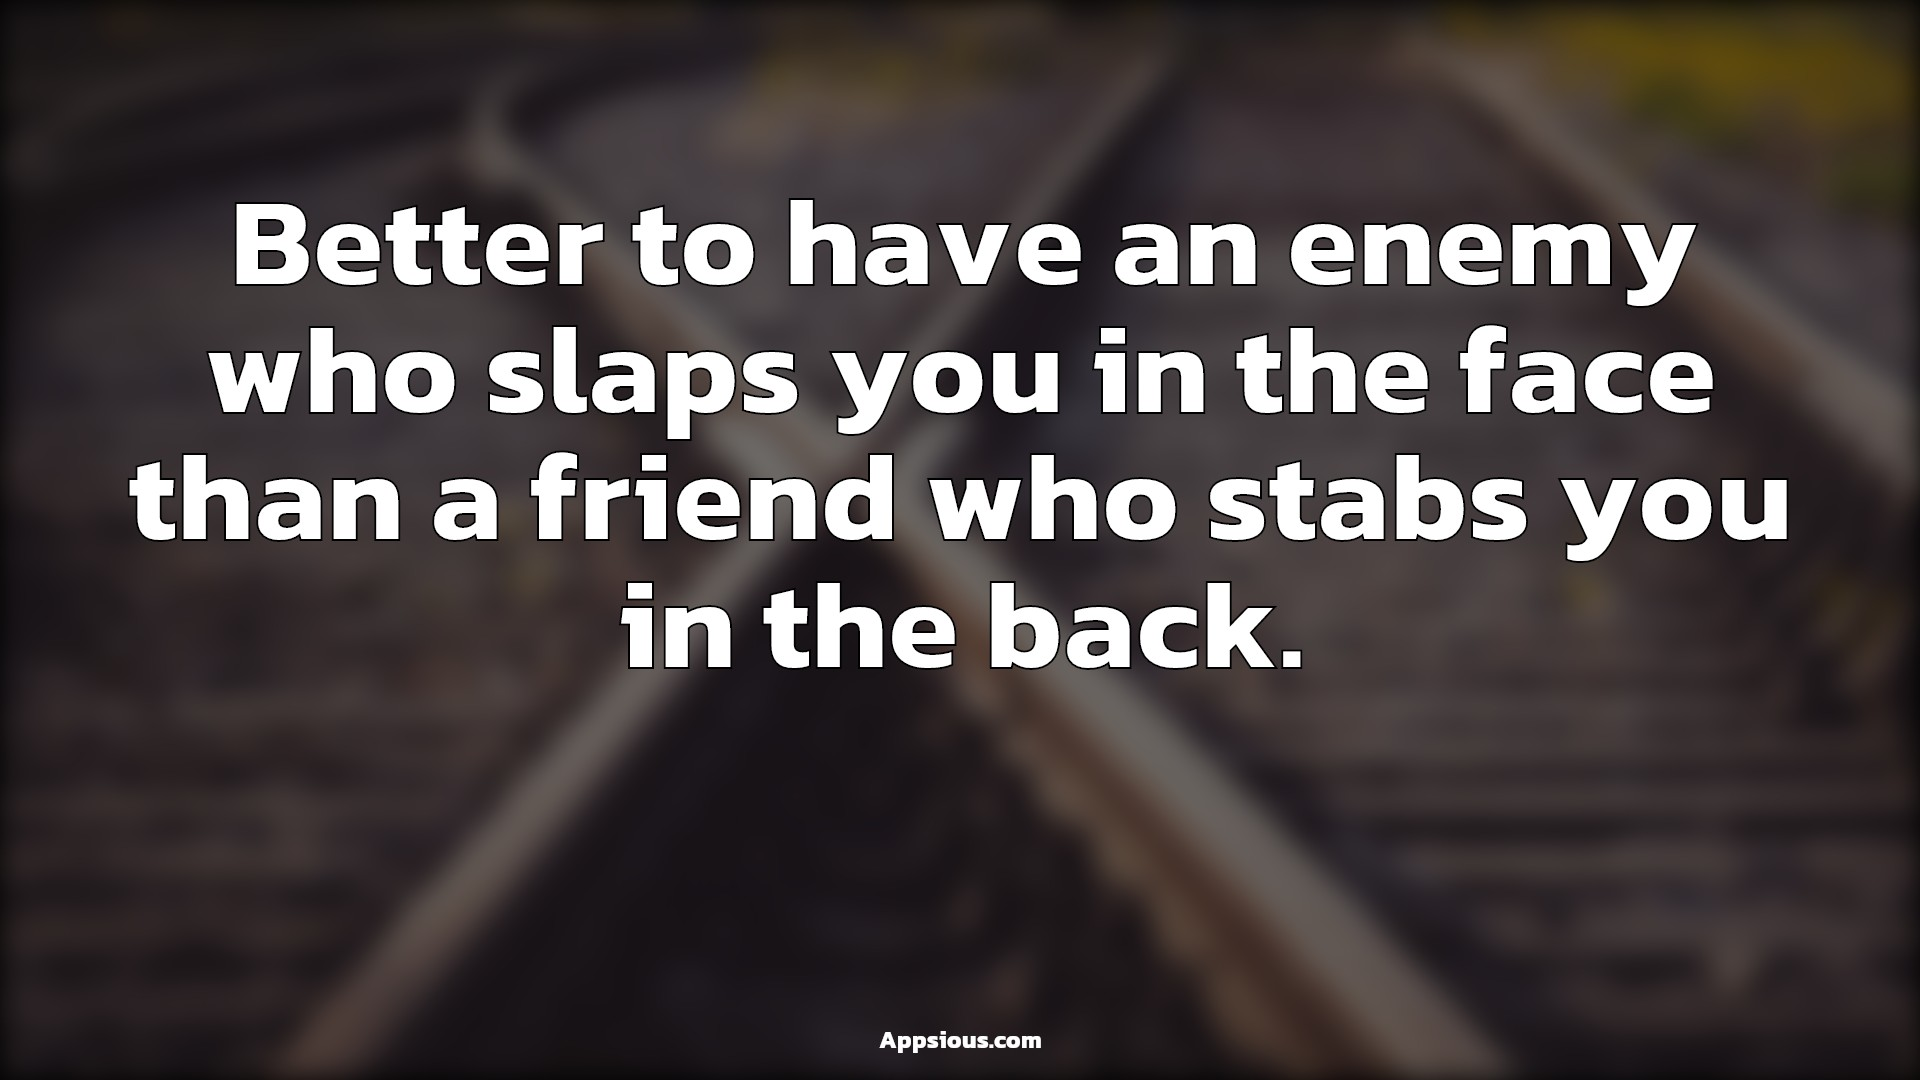 Better to have an enemy who slaps you in the face than a friend who stabs you in the back.